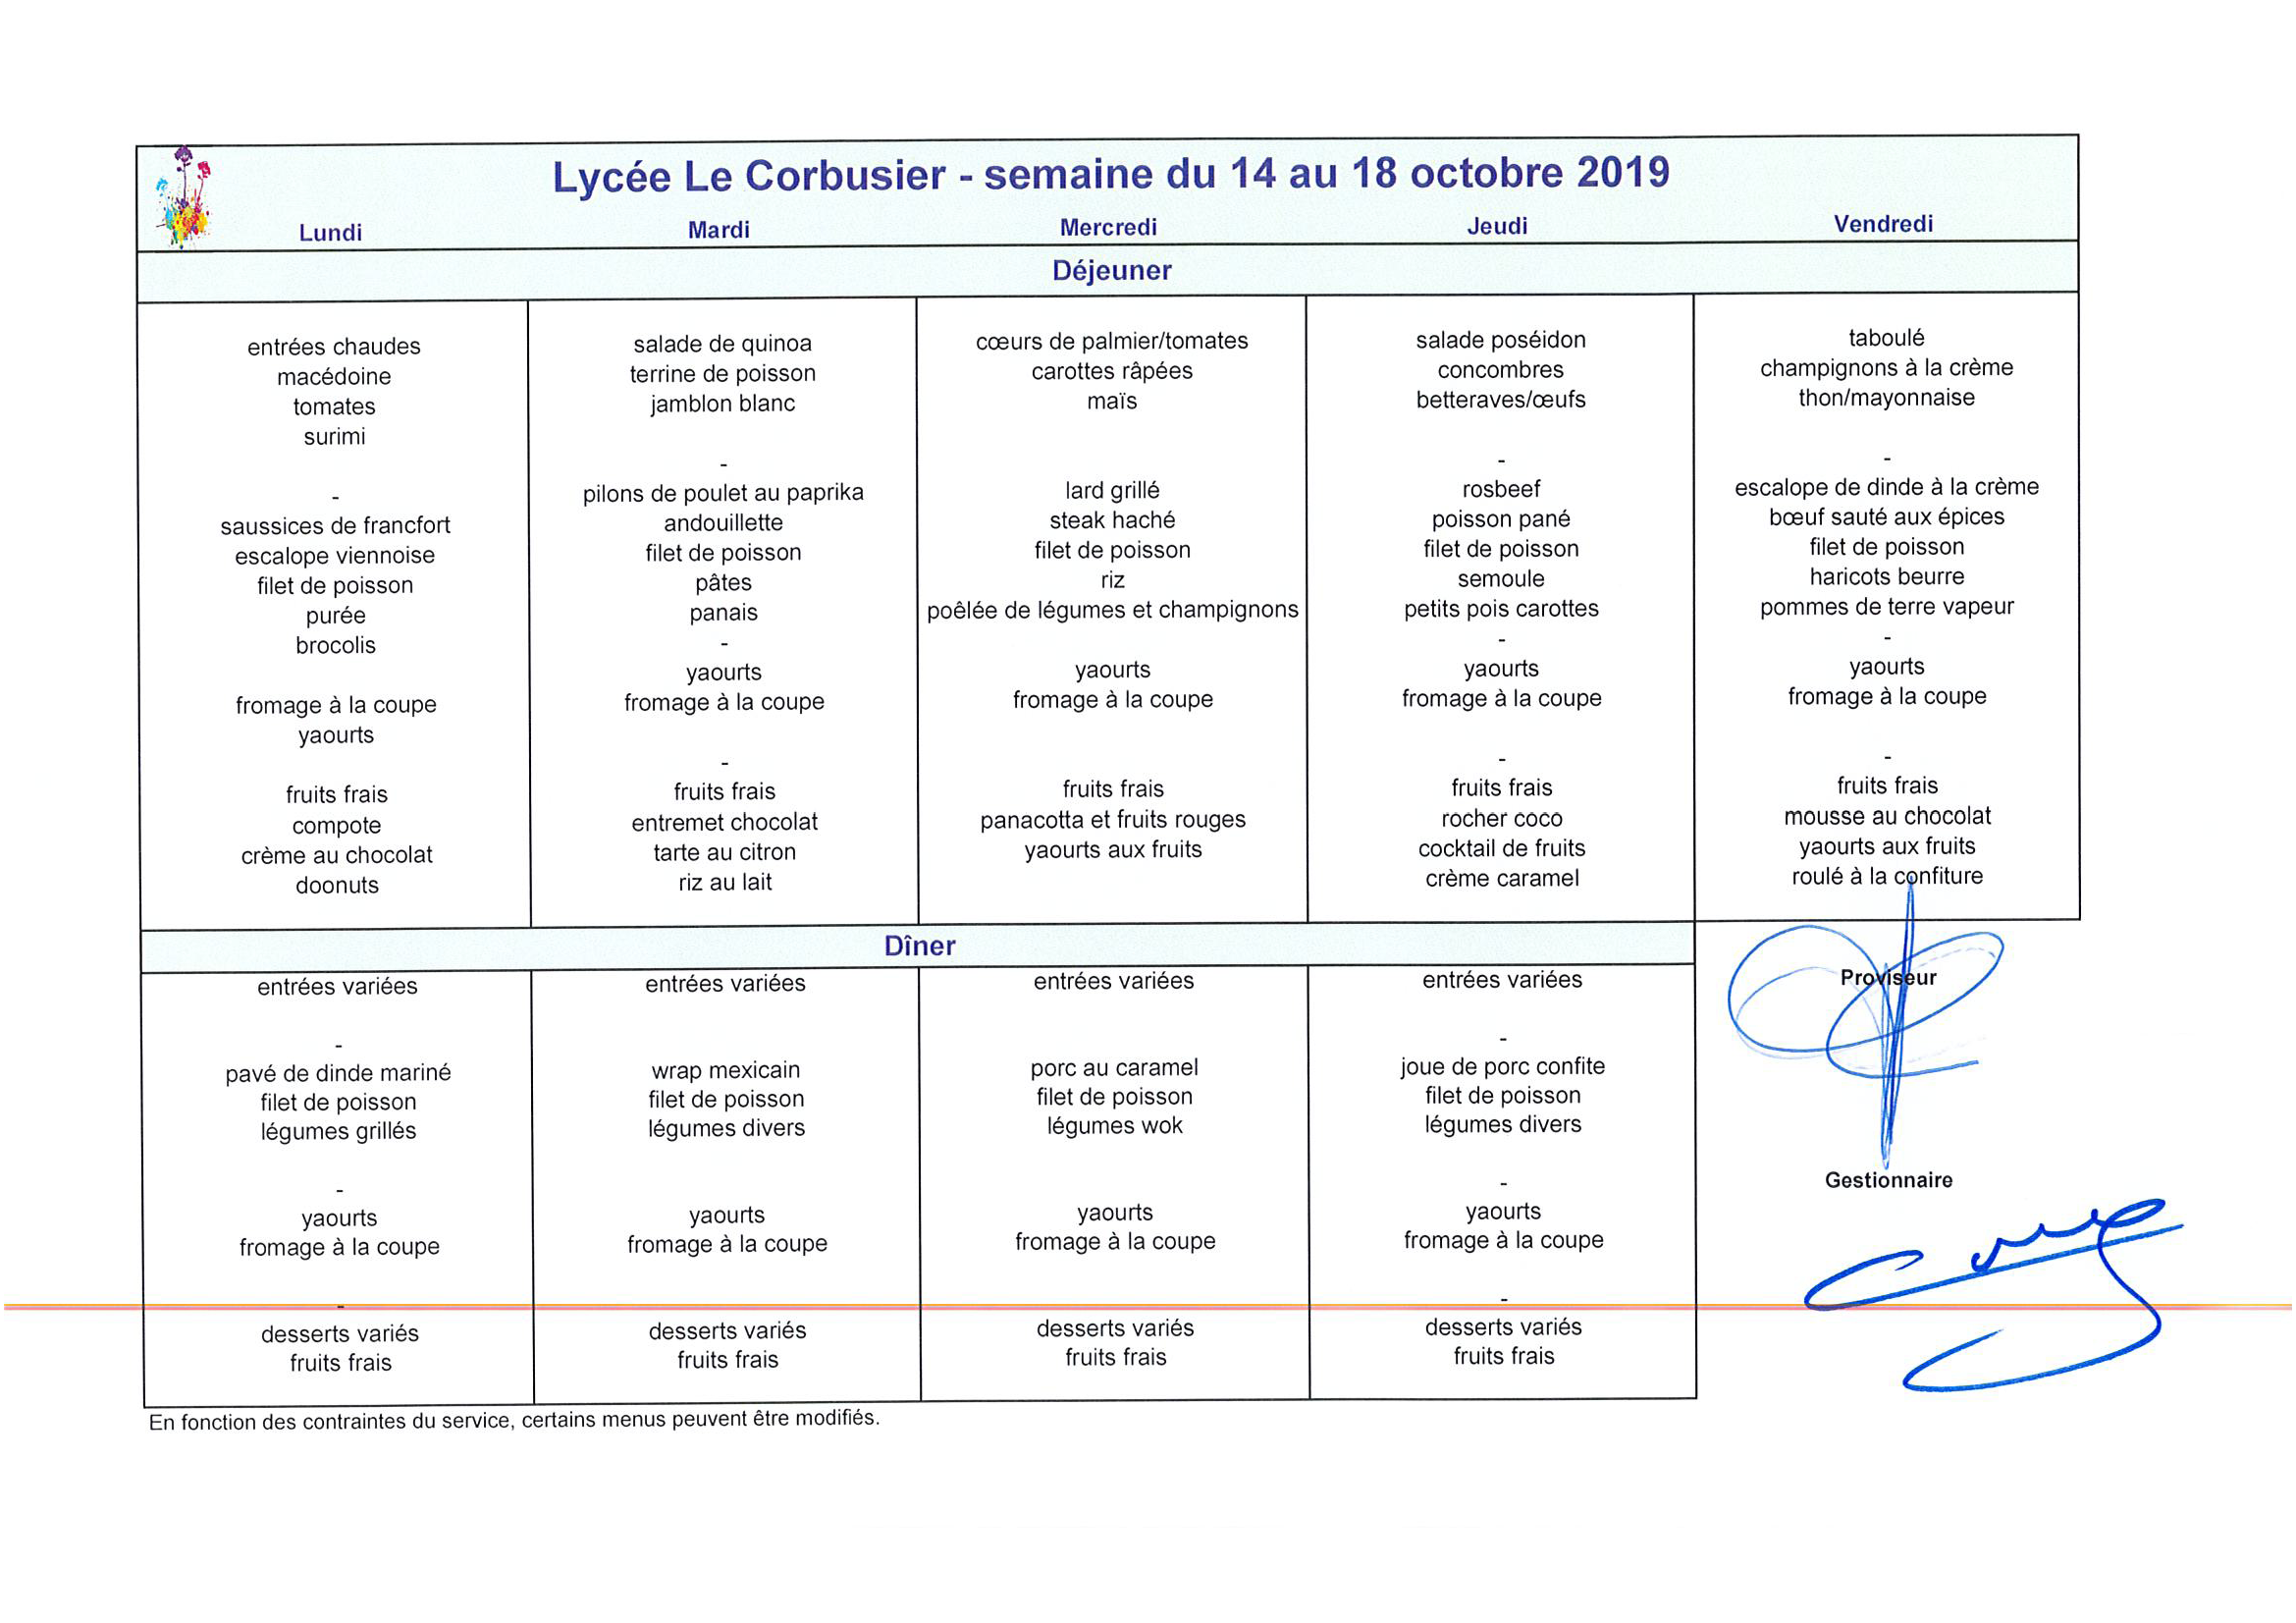 Menu du 14 au 18 octobre 2019